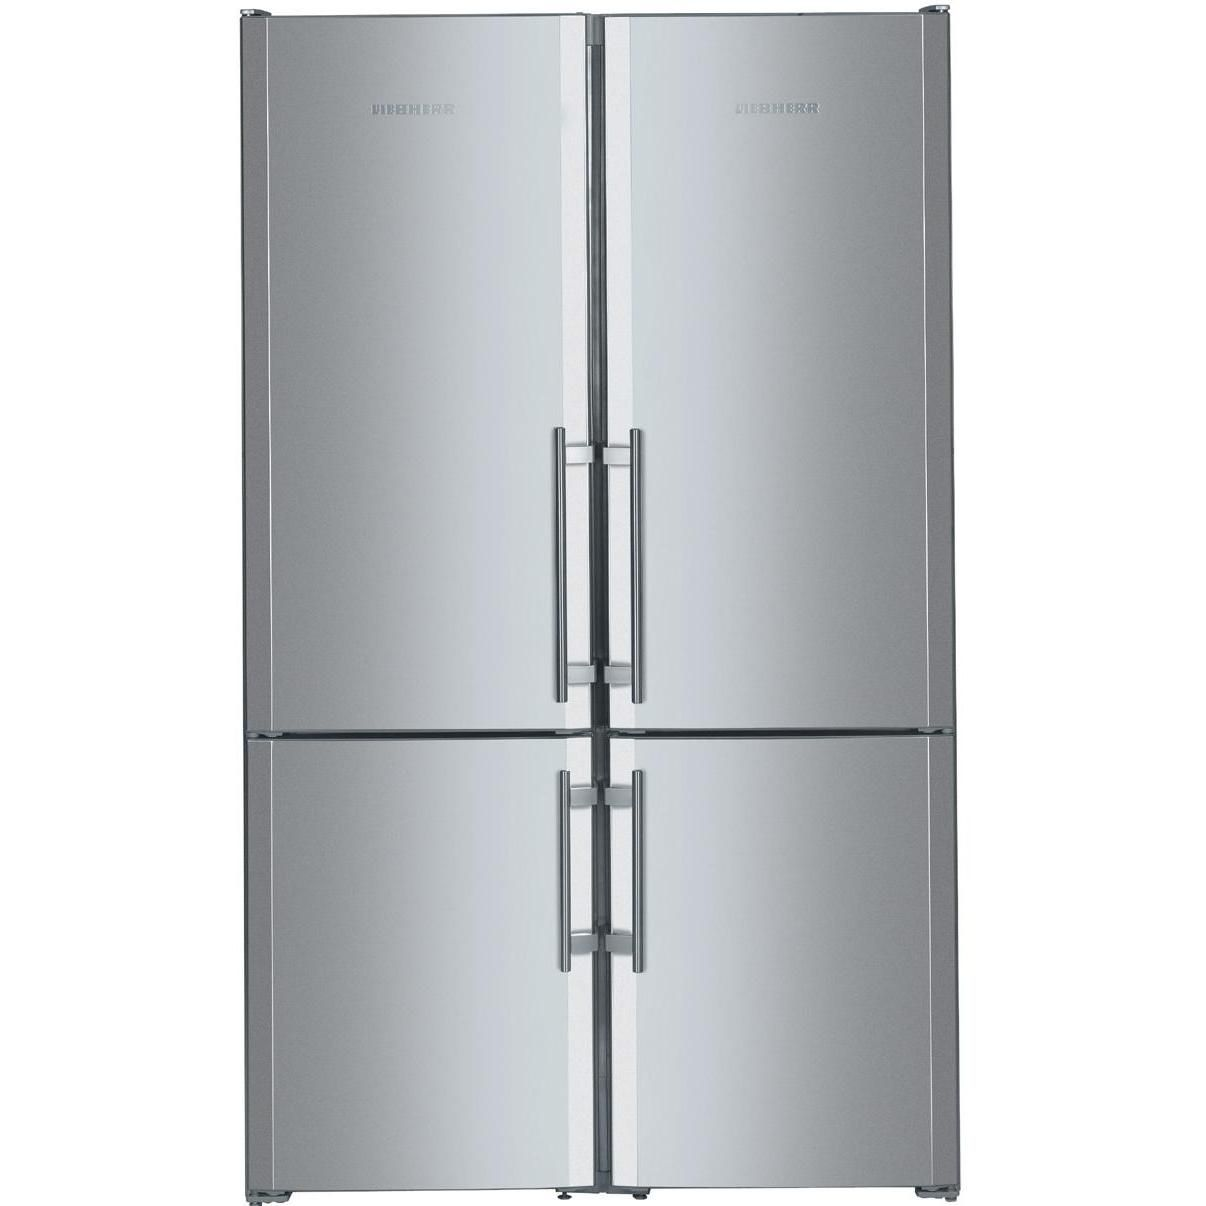 Liebherr 60 Inch Side-By-Side Refrigerator /  Freezer With Ice Maker - SBS-32S1